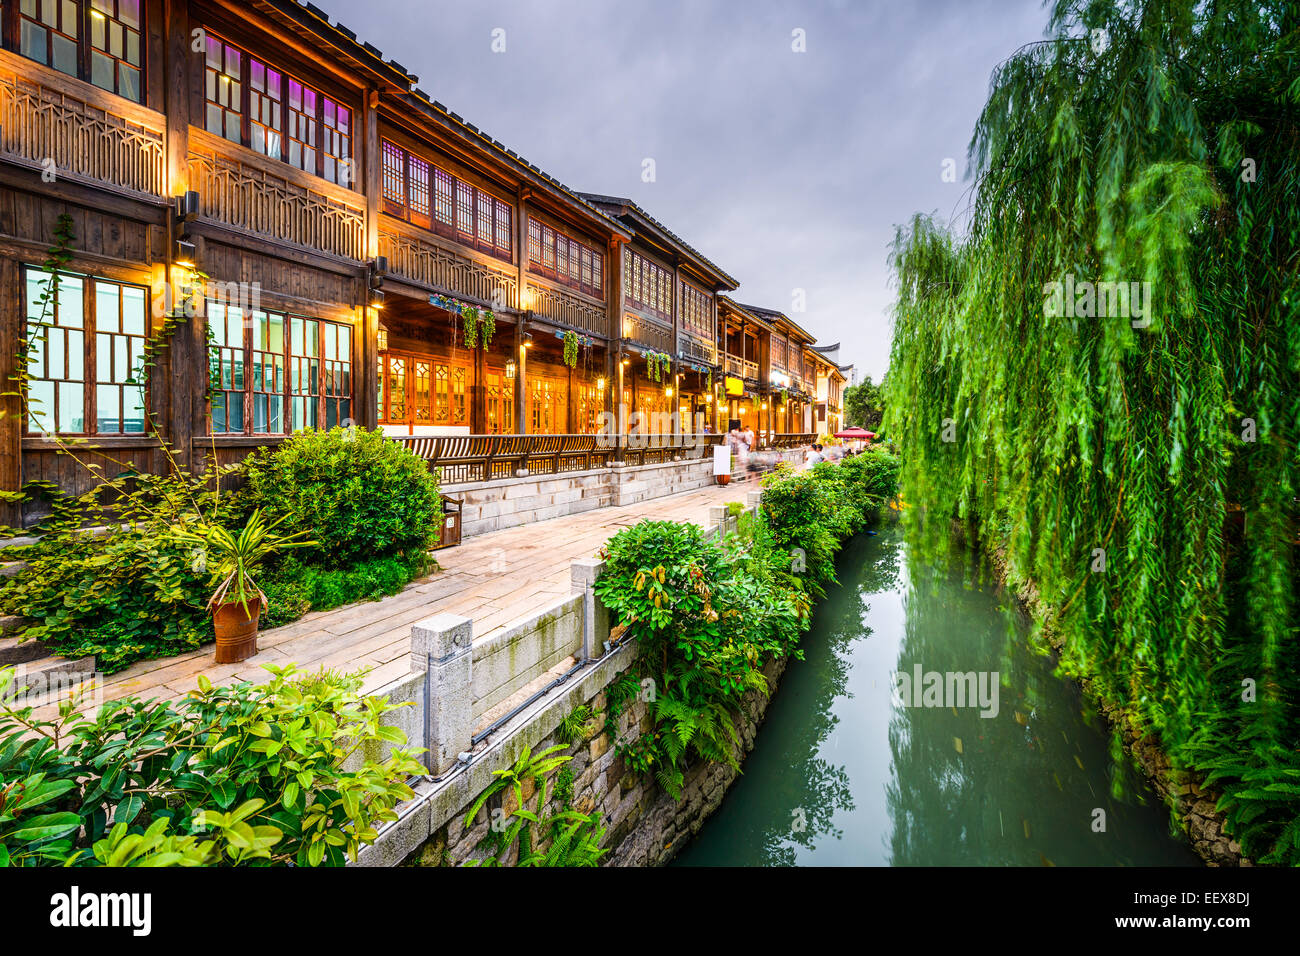 Fuzhou, China at Three Lanes Seven Alleys traditional shopping district. - Stock Image